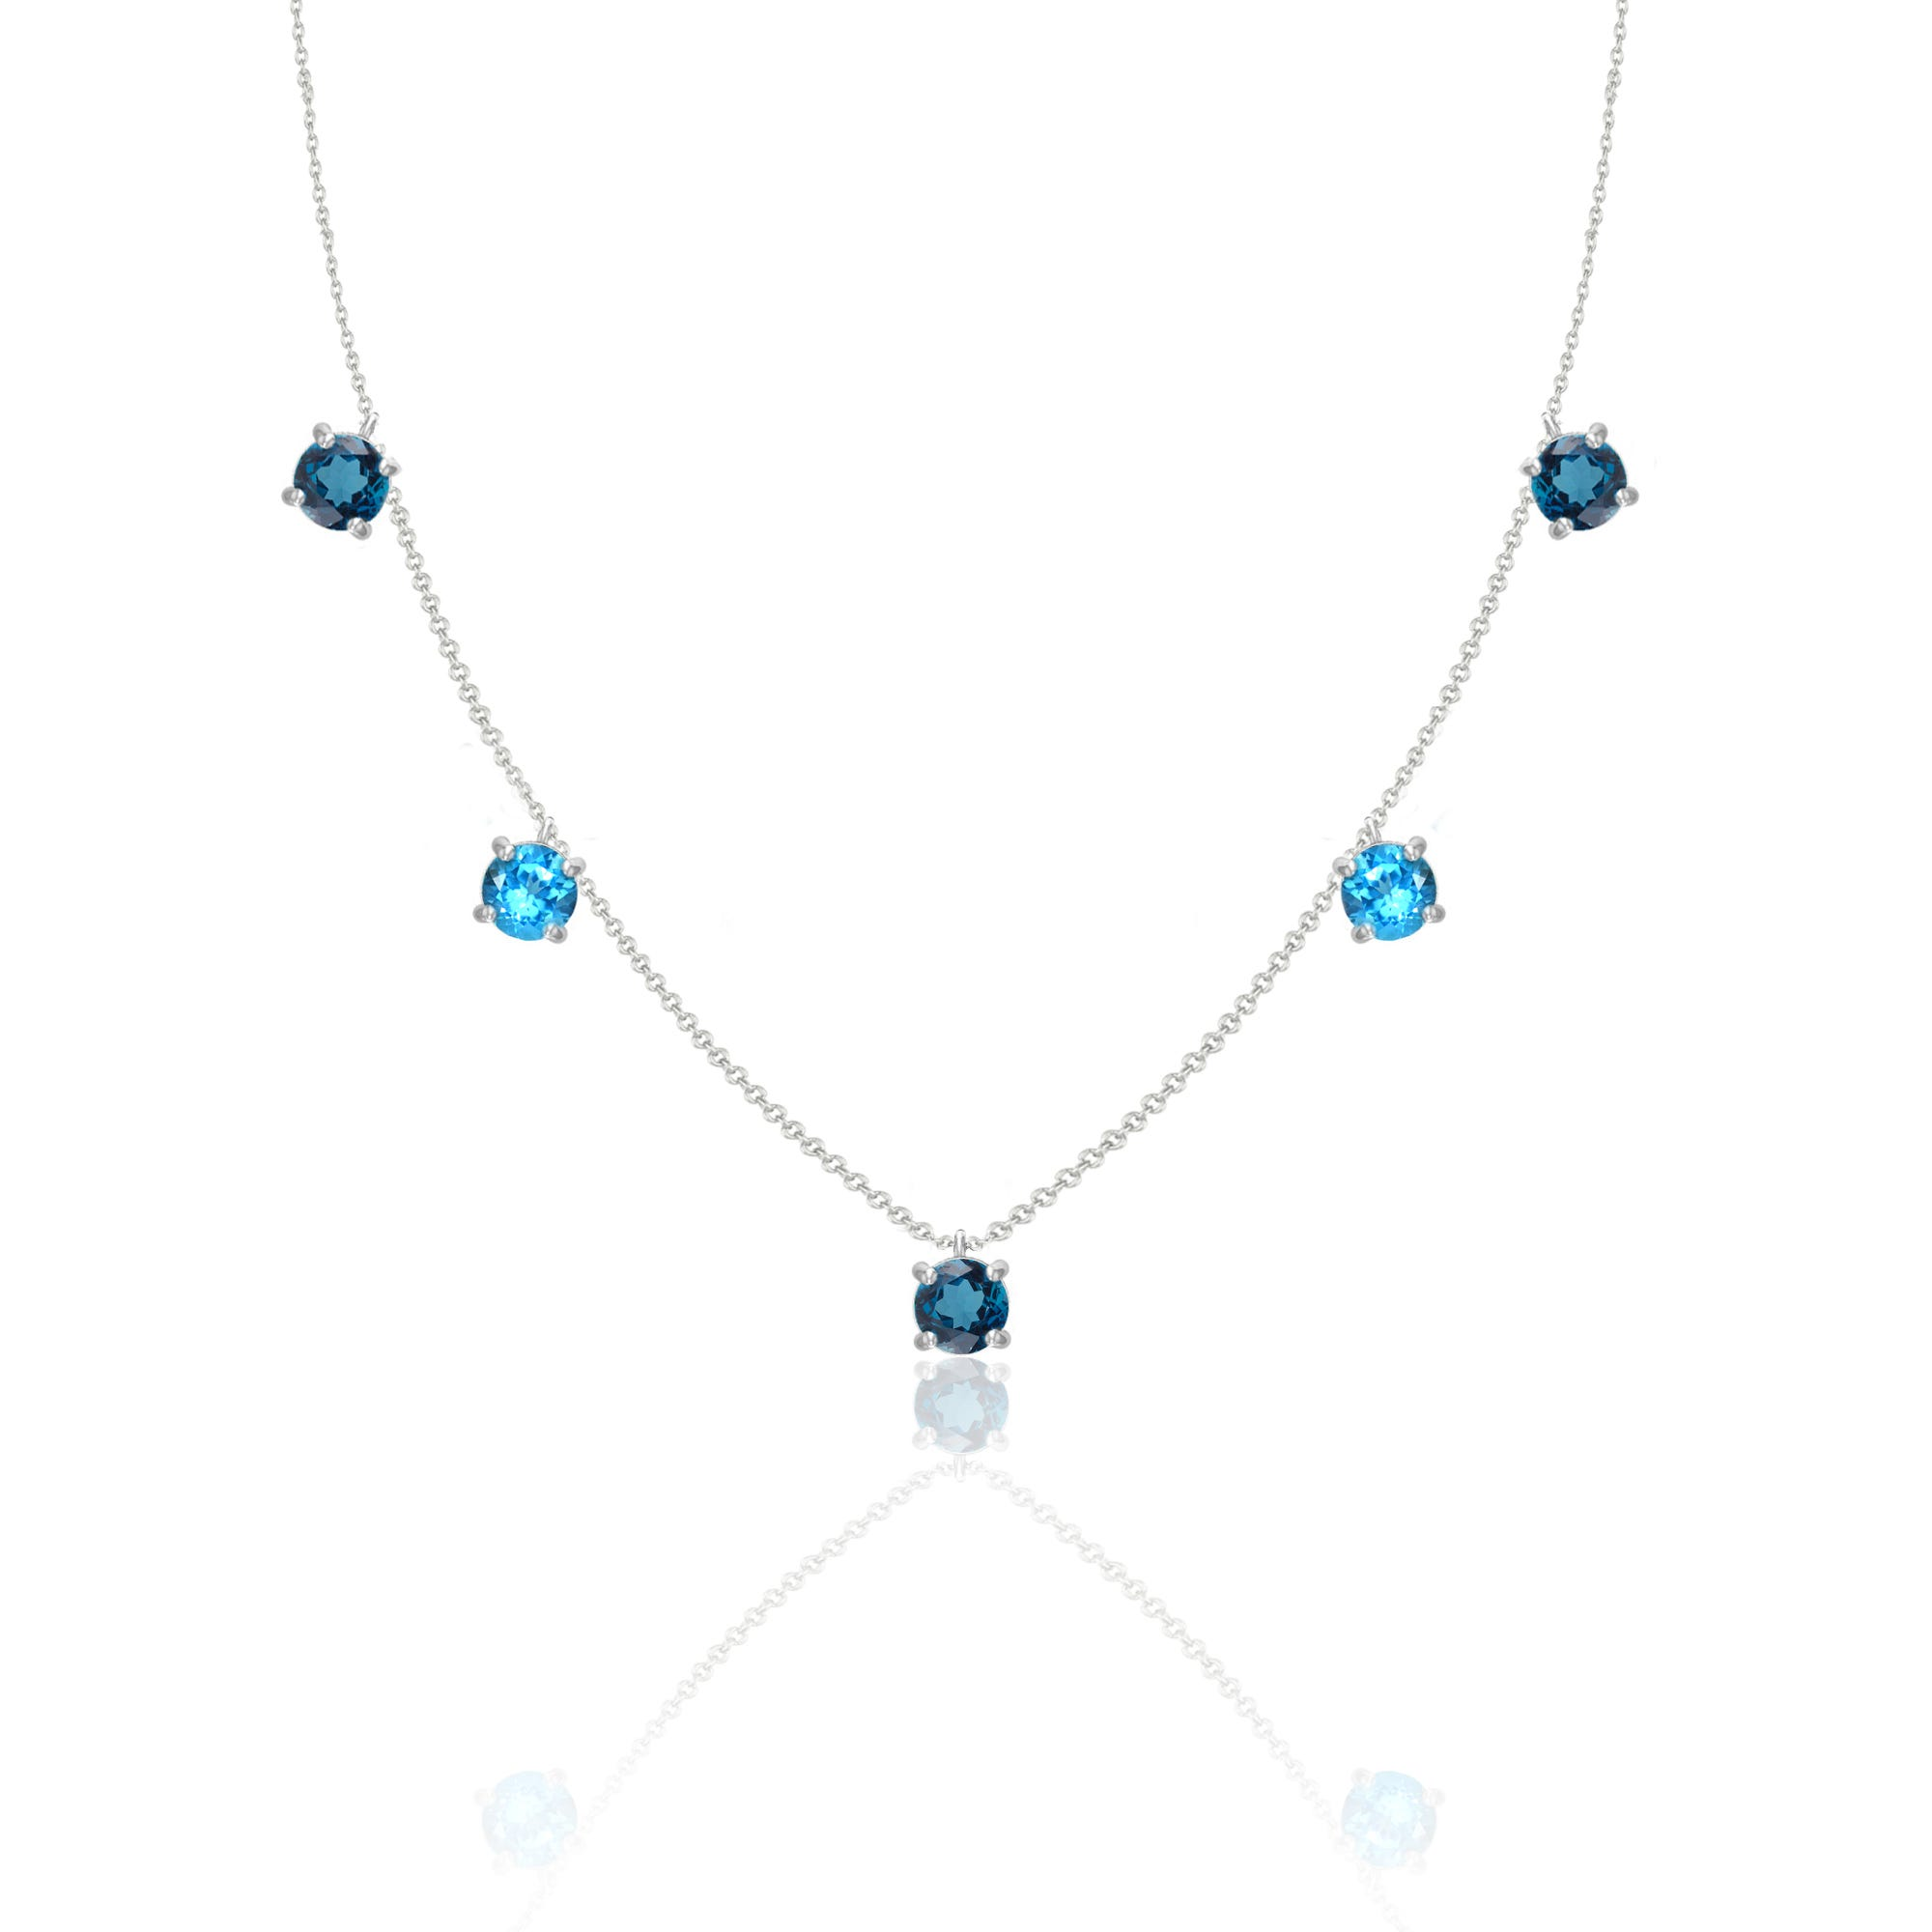 London & Swiss Blue Topaz Gem Necklace in 10k White Gold